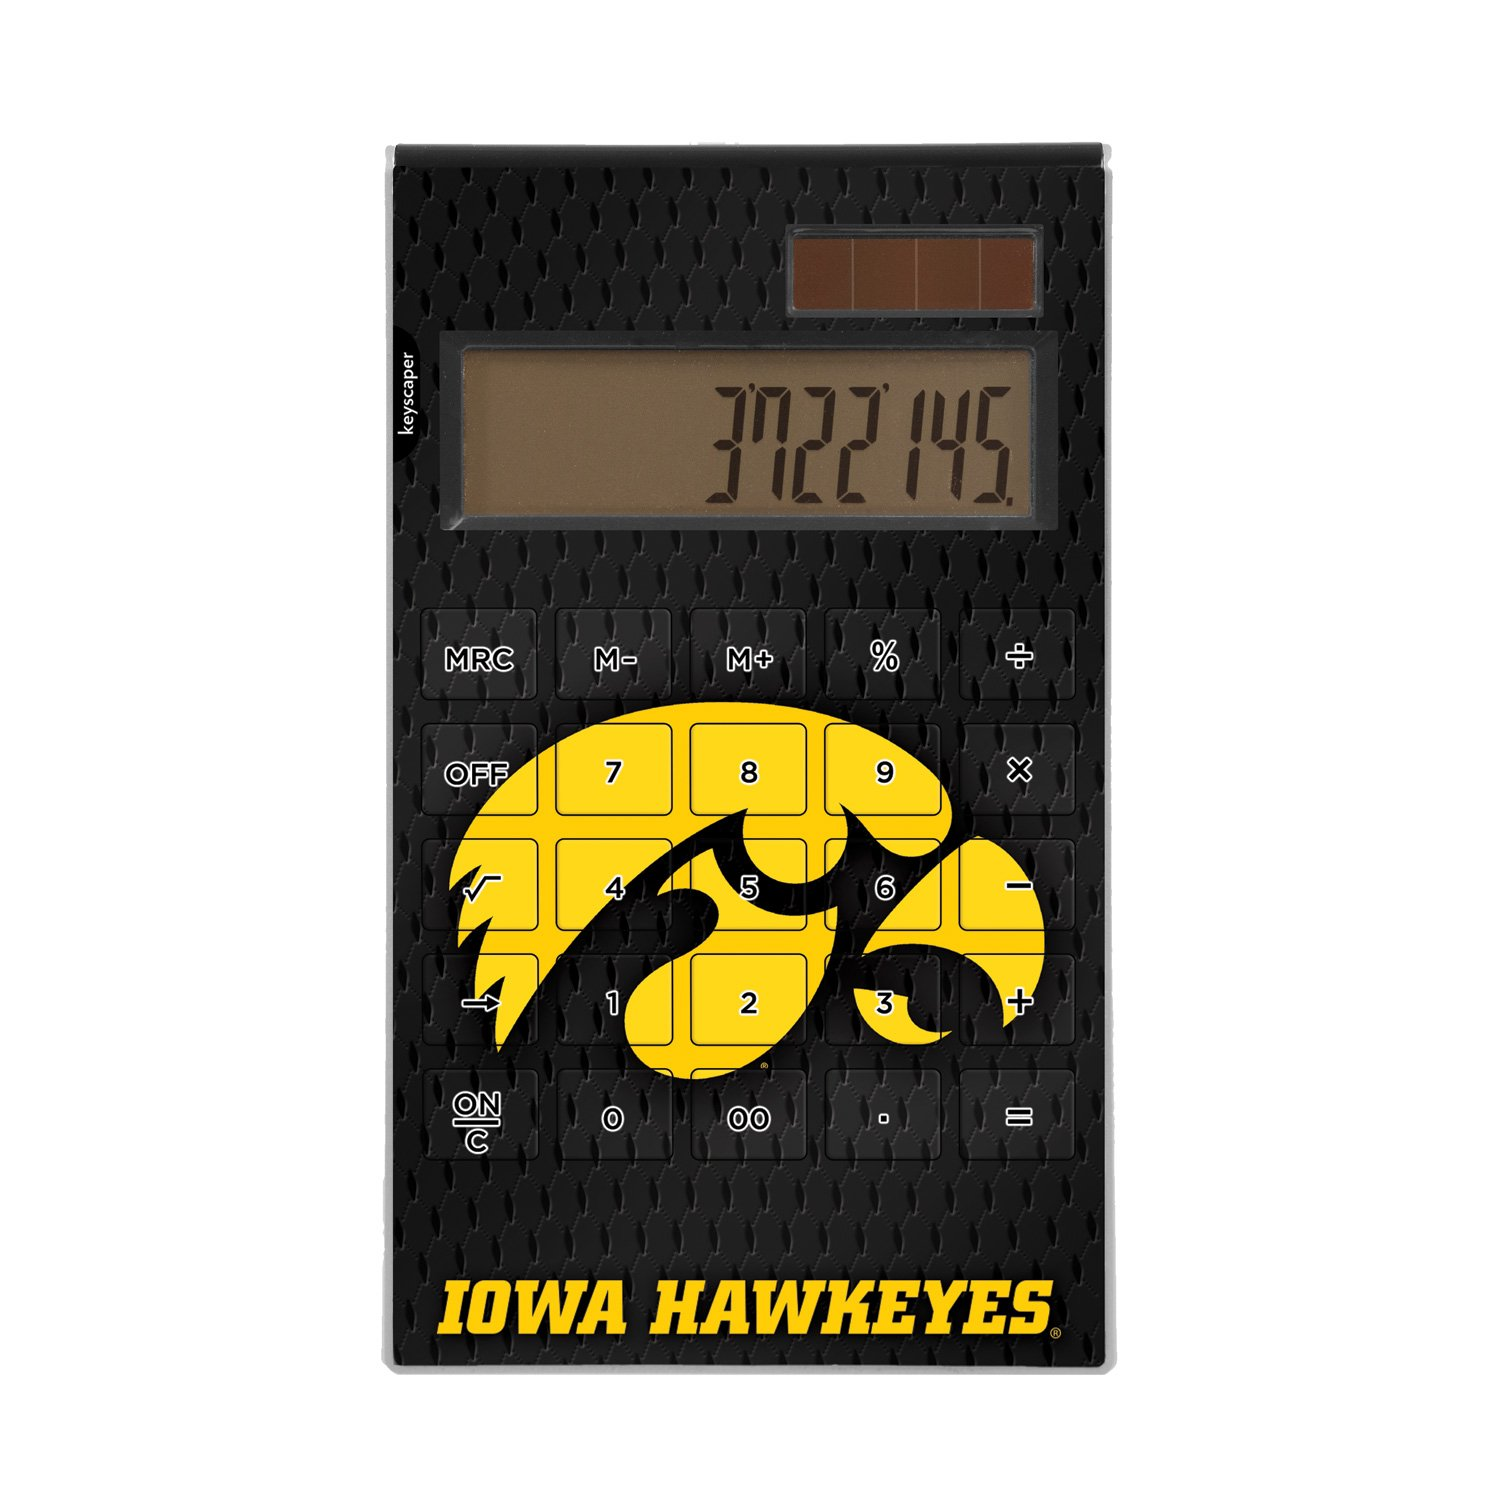 Iowa Hawkeyes Desktop Calculator officially licensed by the University of Iowa Full Size Large Button Solar by keyscaper® by Keyscaper